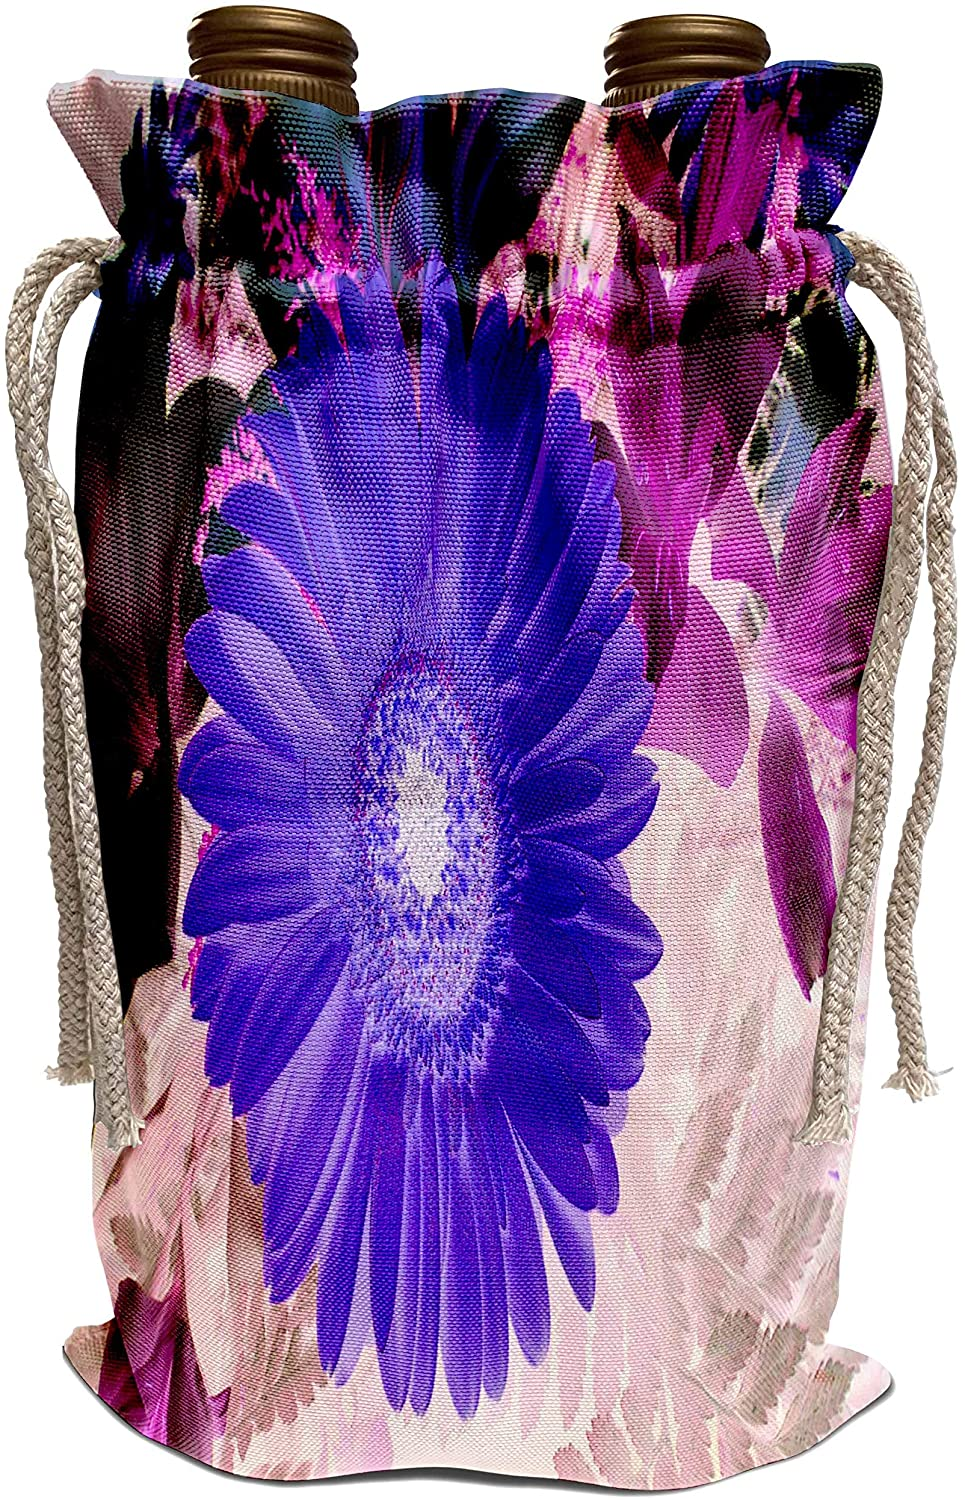 3dRose Yves Creations Florals and Bouquets - Pretty Blue Solitaire Daisy - Wine Bag (wbg_9352_1)